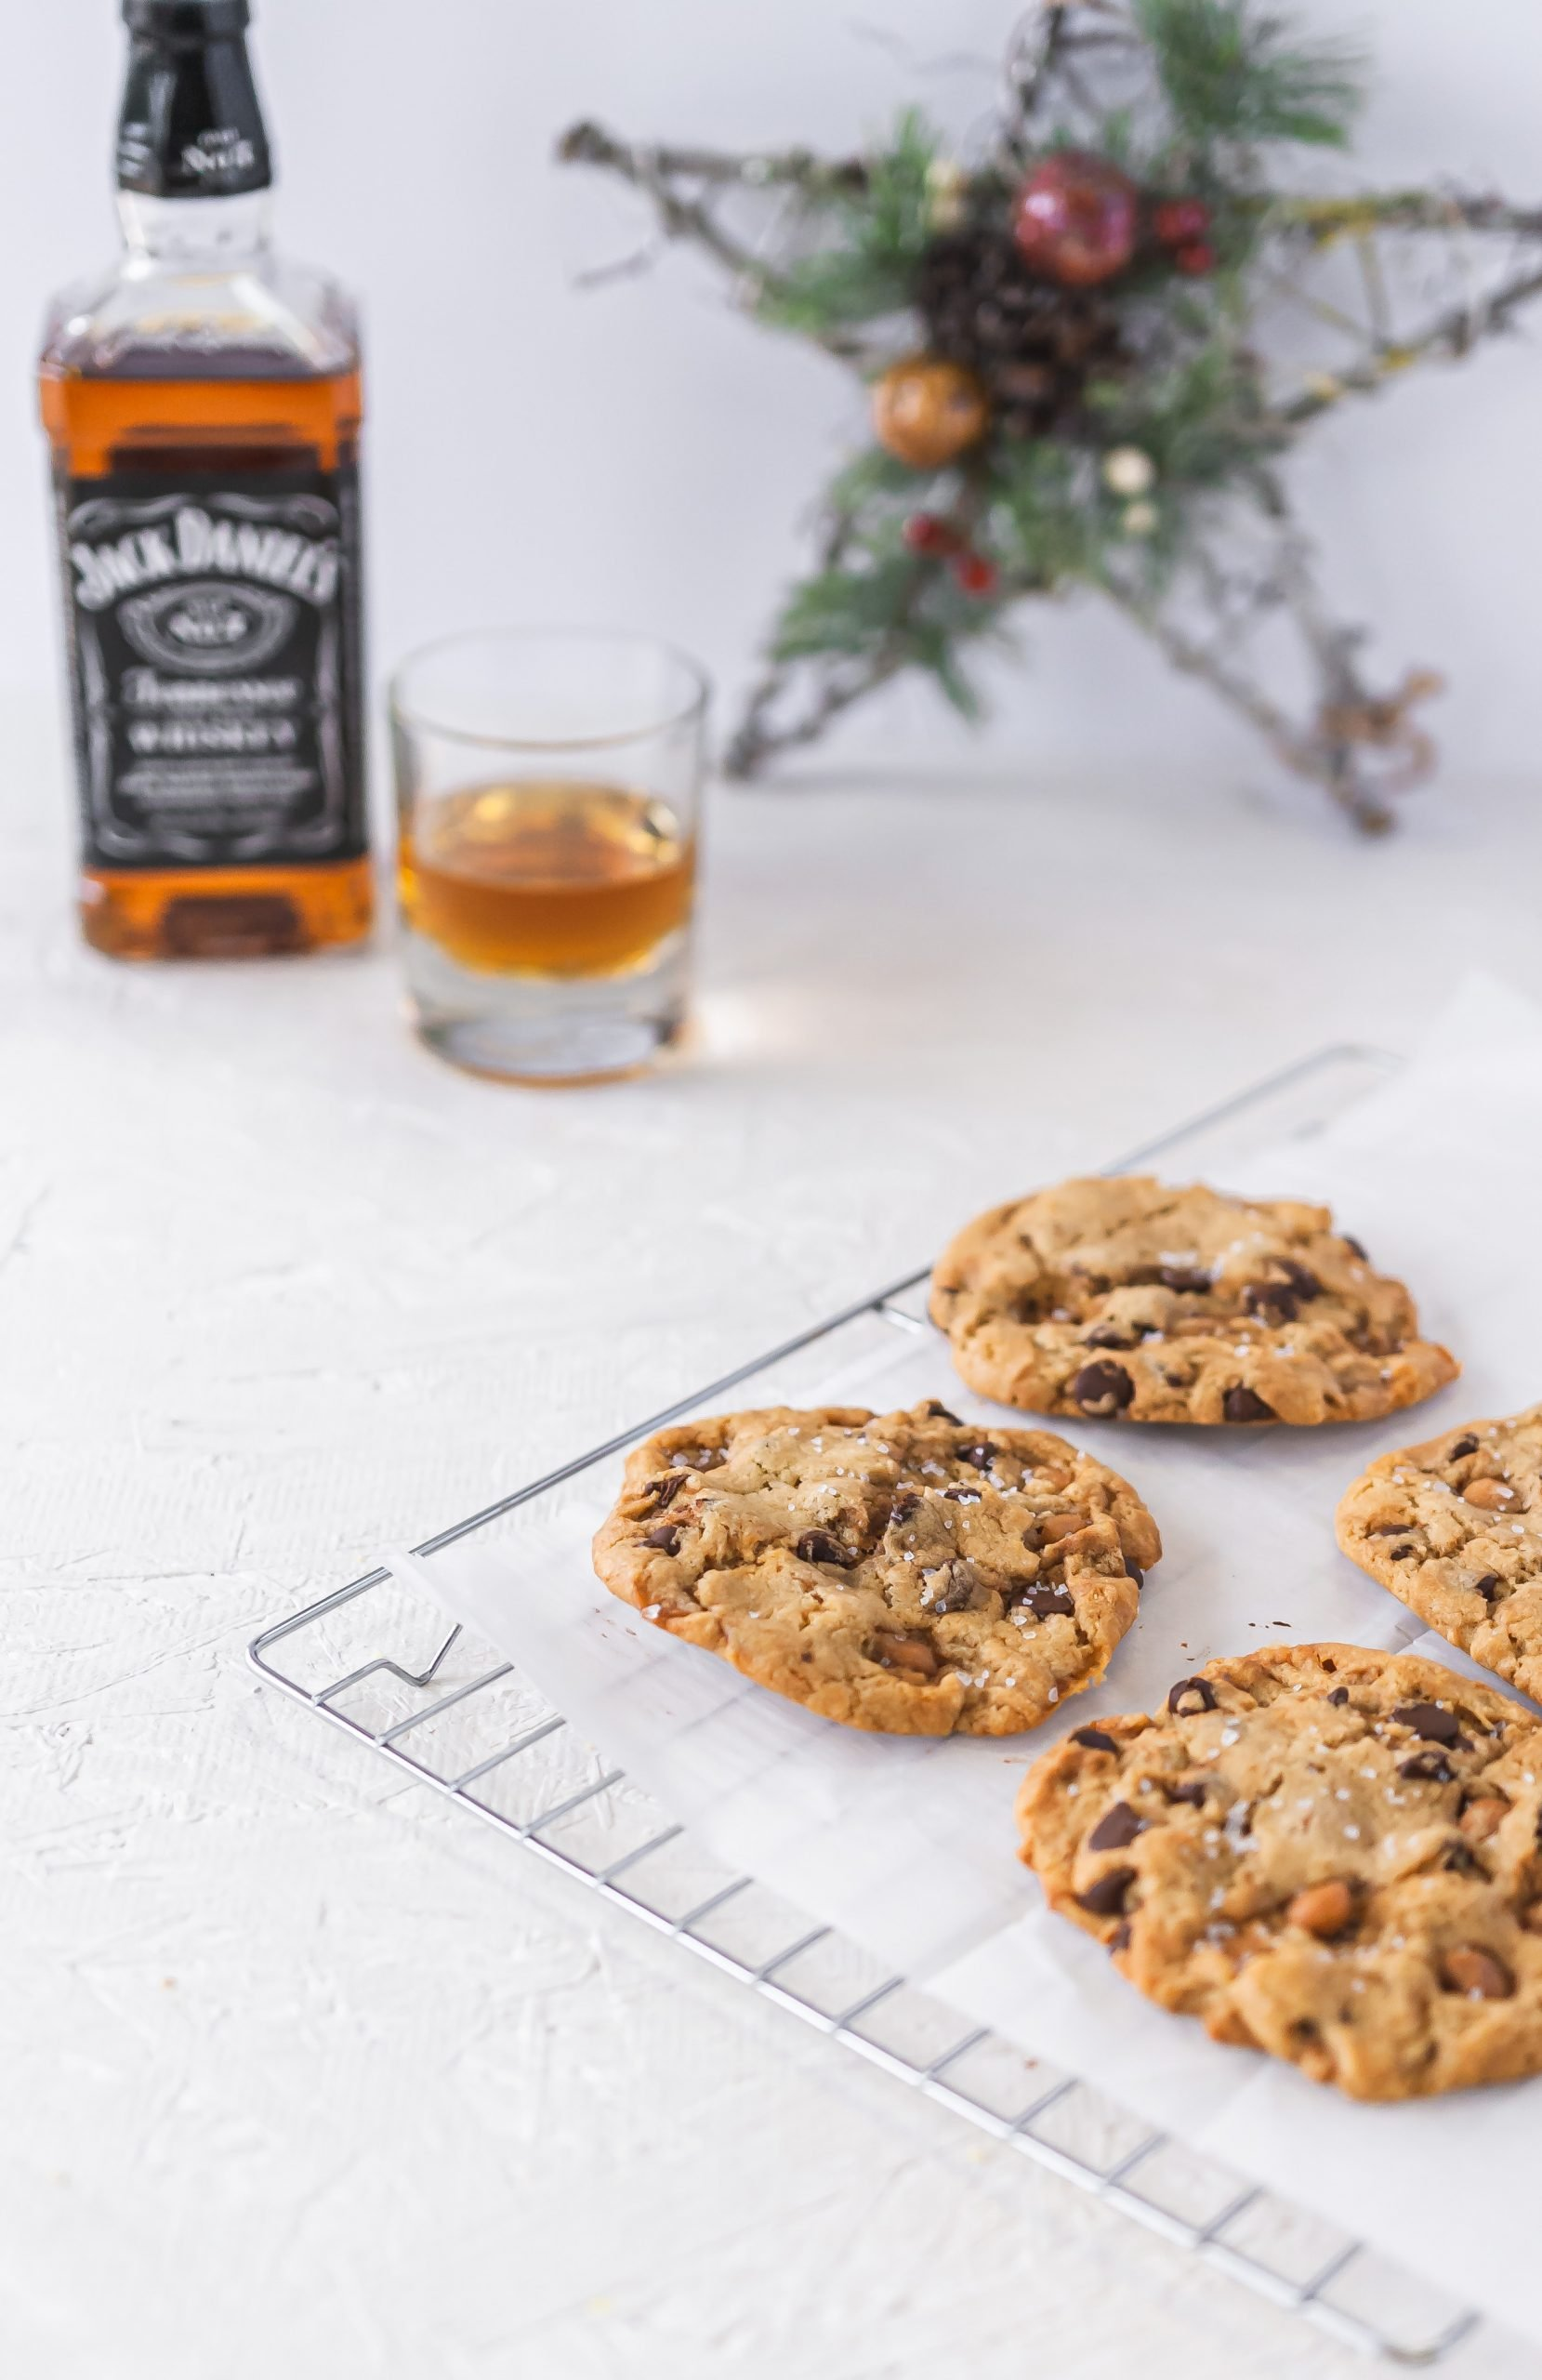 Food photo of sea salt caramel chocolate chip cookies on cooling rack with Jack Daniels